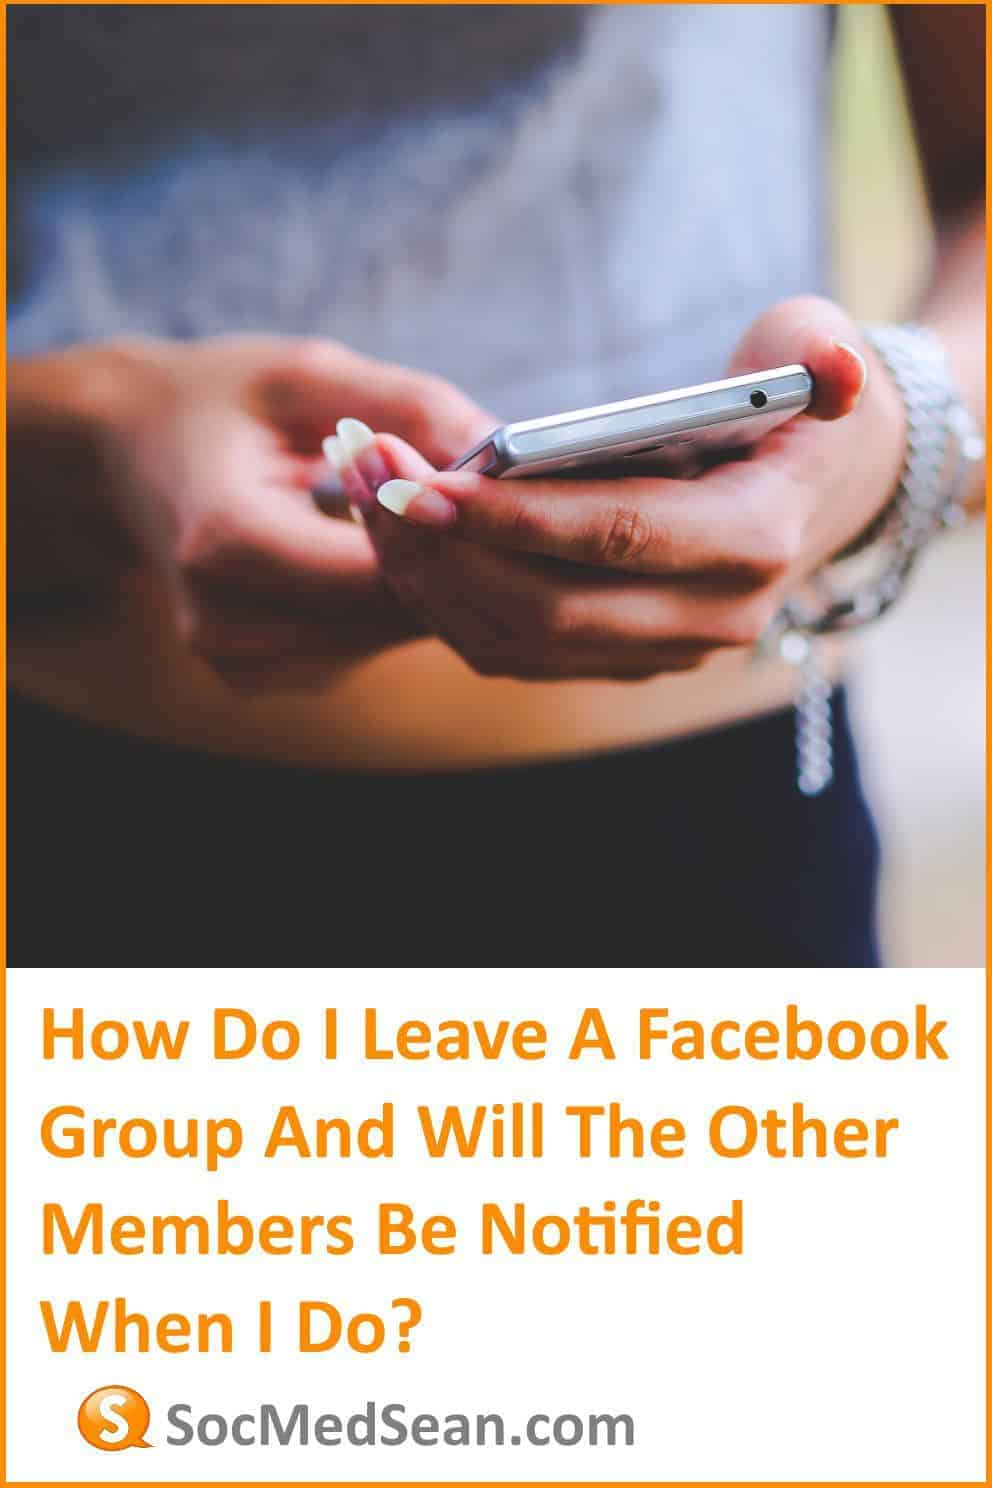 Steps to leaving a Facebook group without notifying the other members